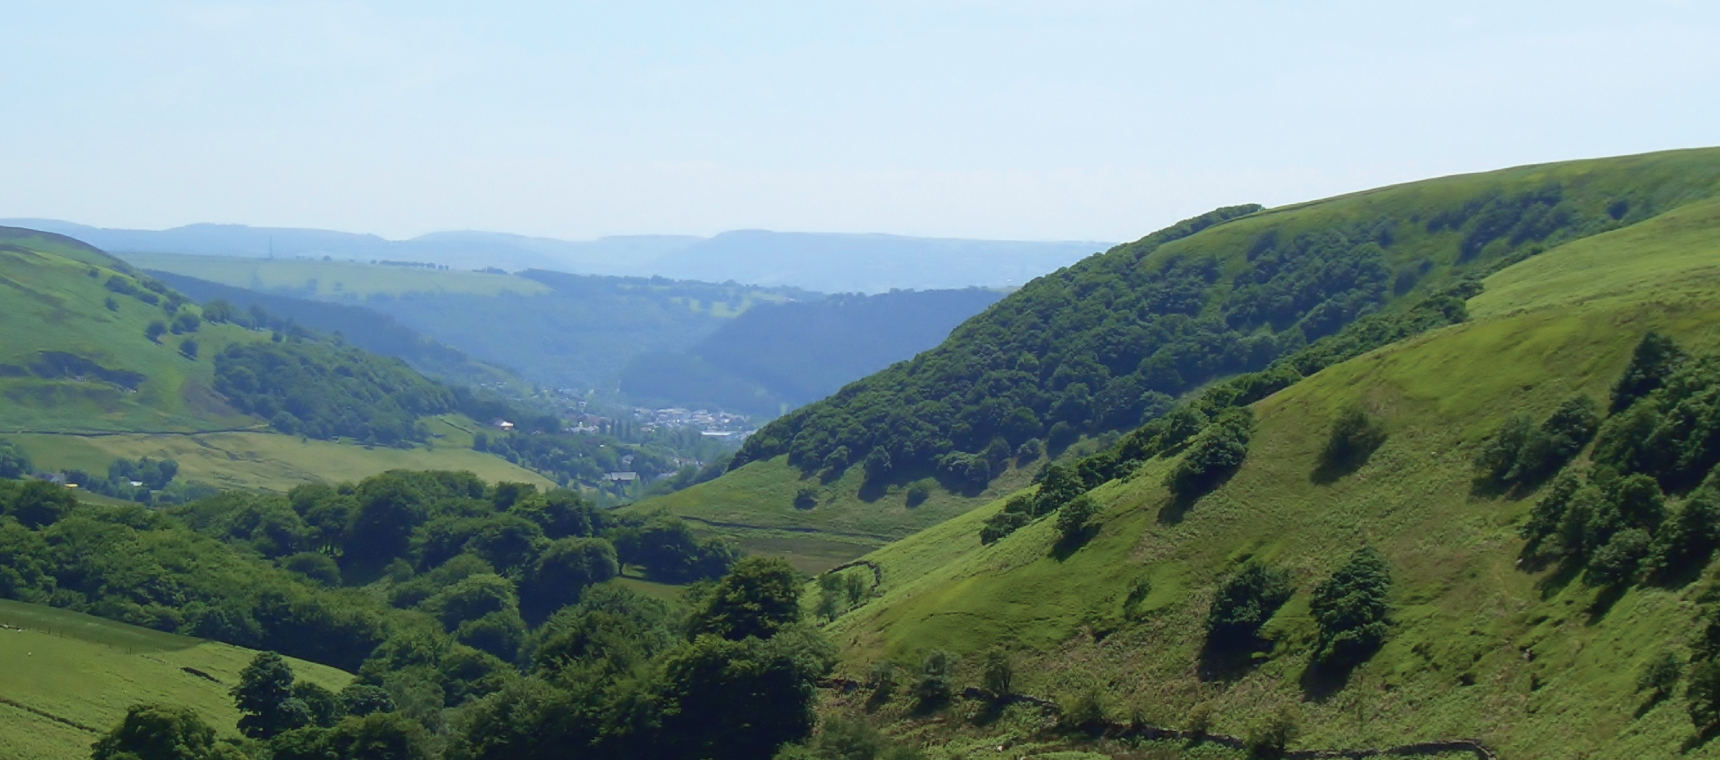 Looking towards Abertillery from the head of the Tyleri by Tylerian3 https://commons.wikimedia.org/w/index.php?title=User:Tylerian3